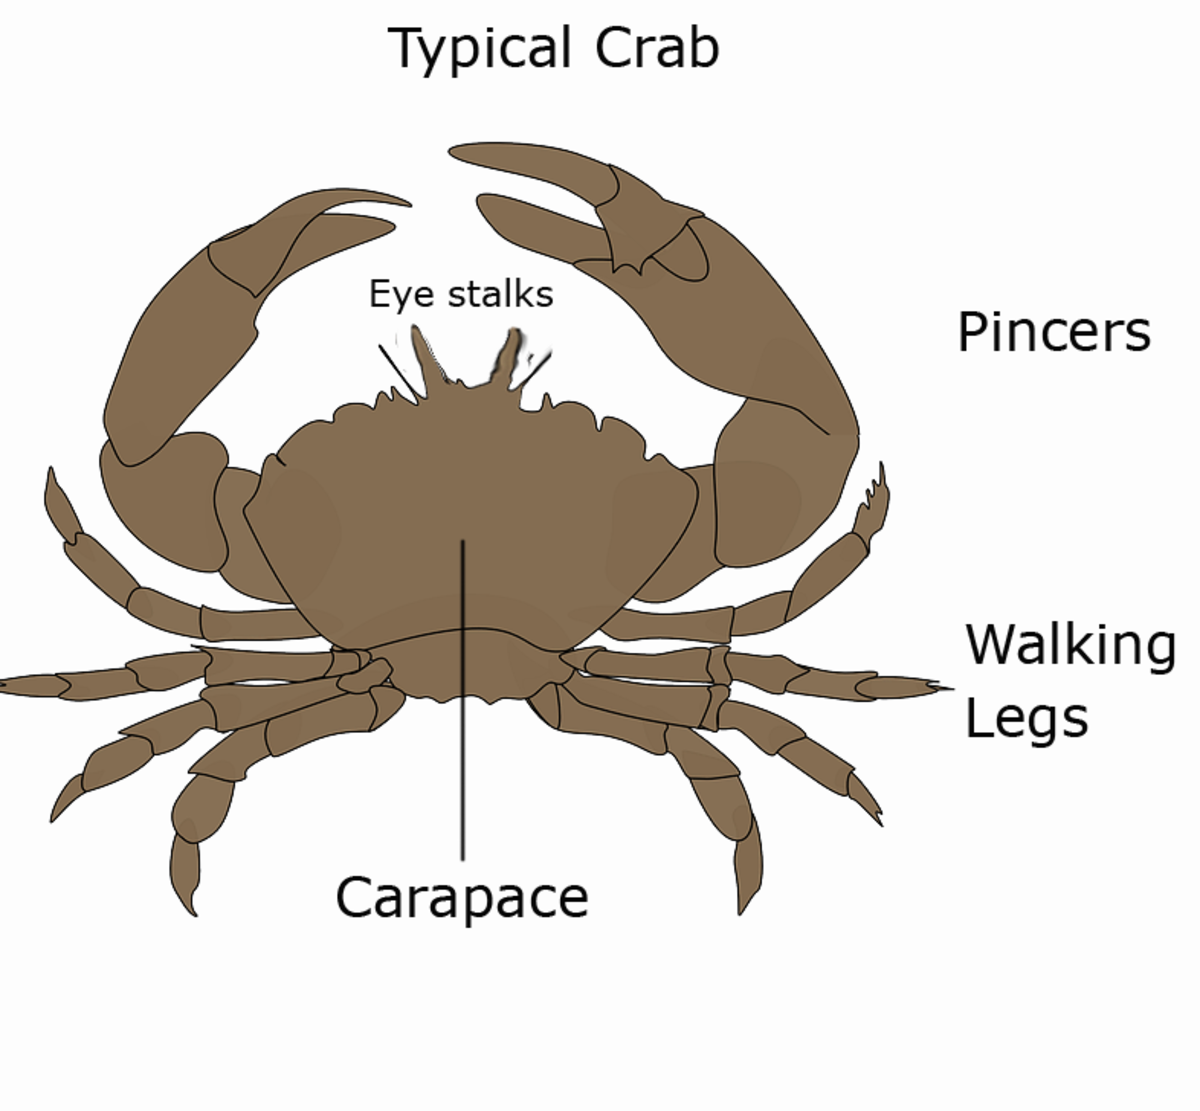 Typical Crab